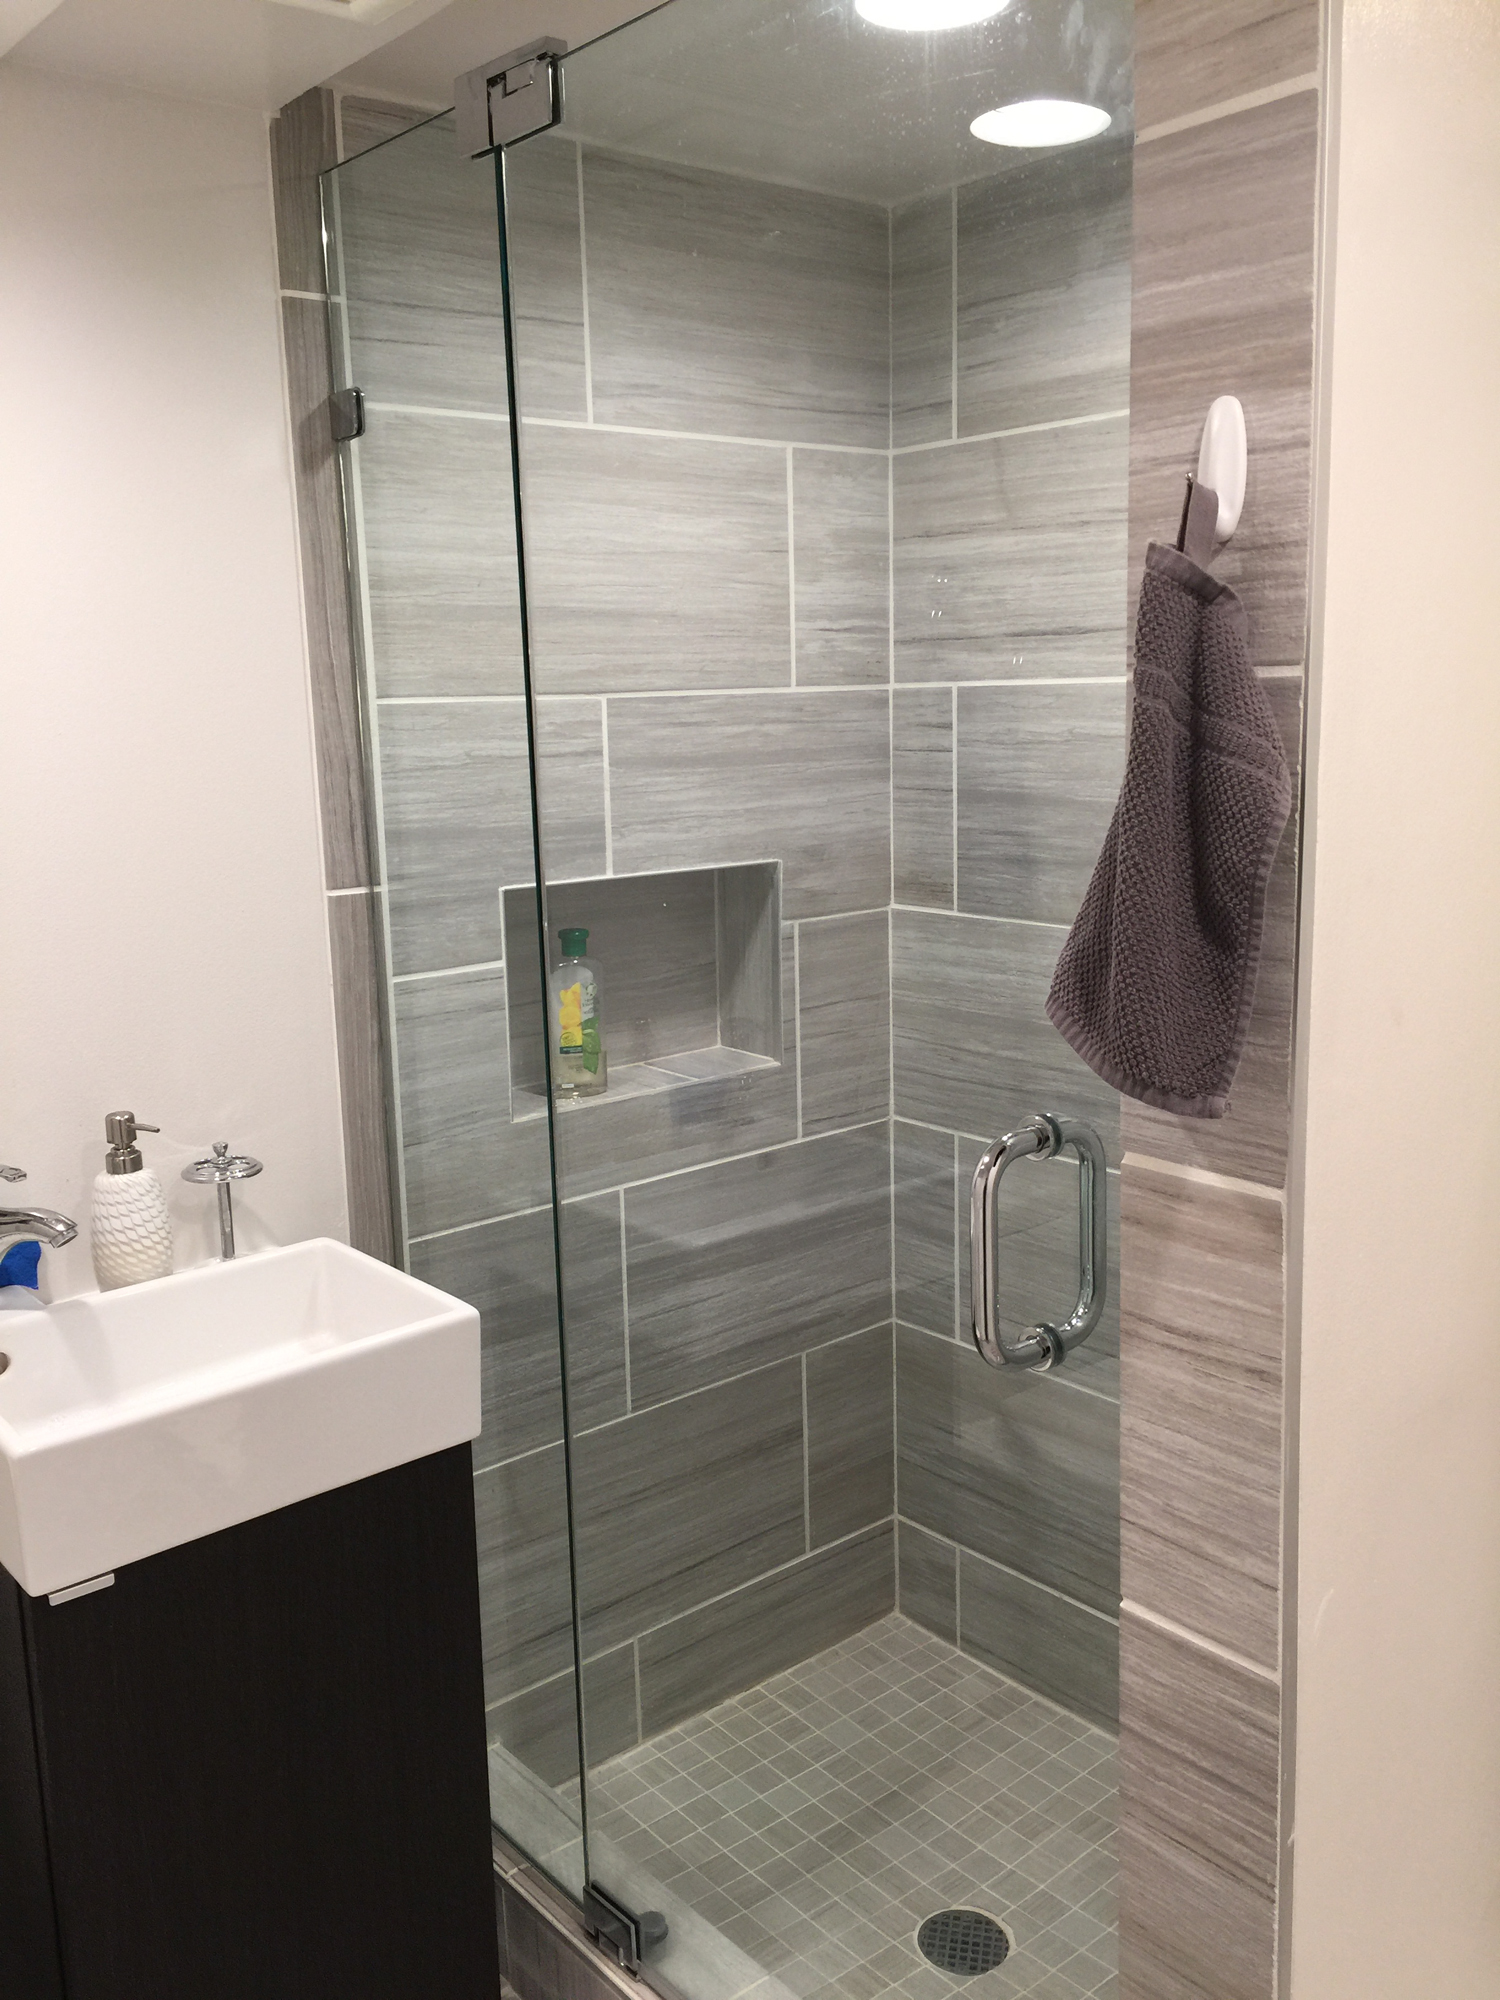 Small bathroom frameless shower door installation wayne nj for Small toilet with bathtub